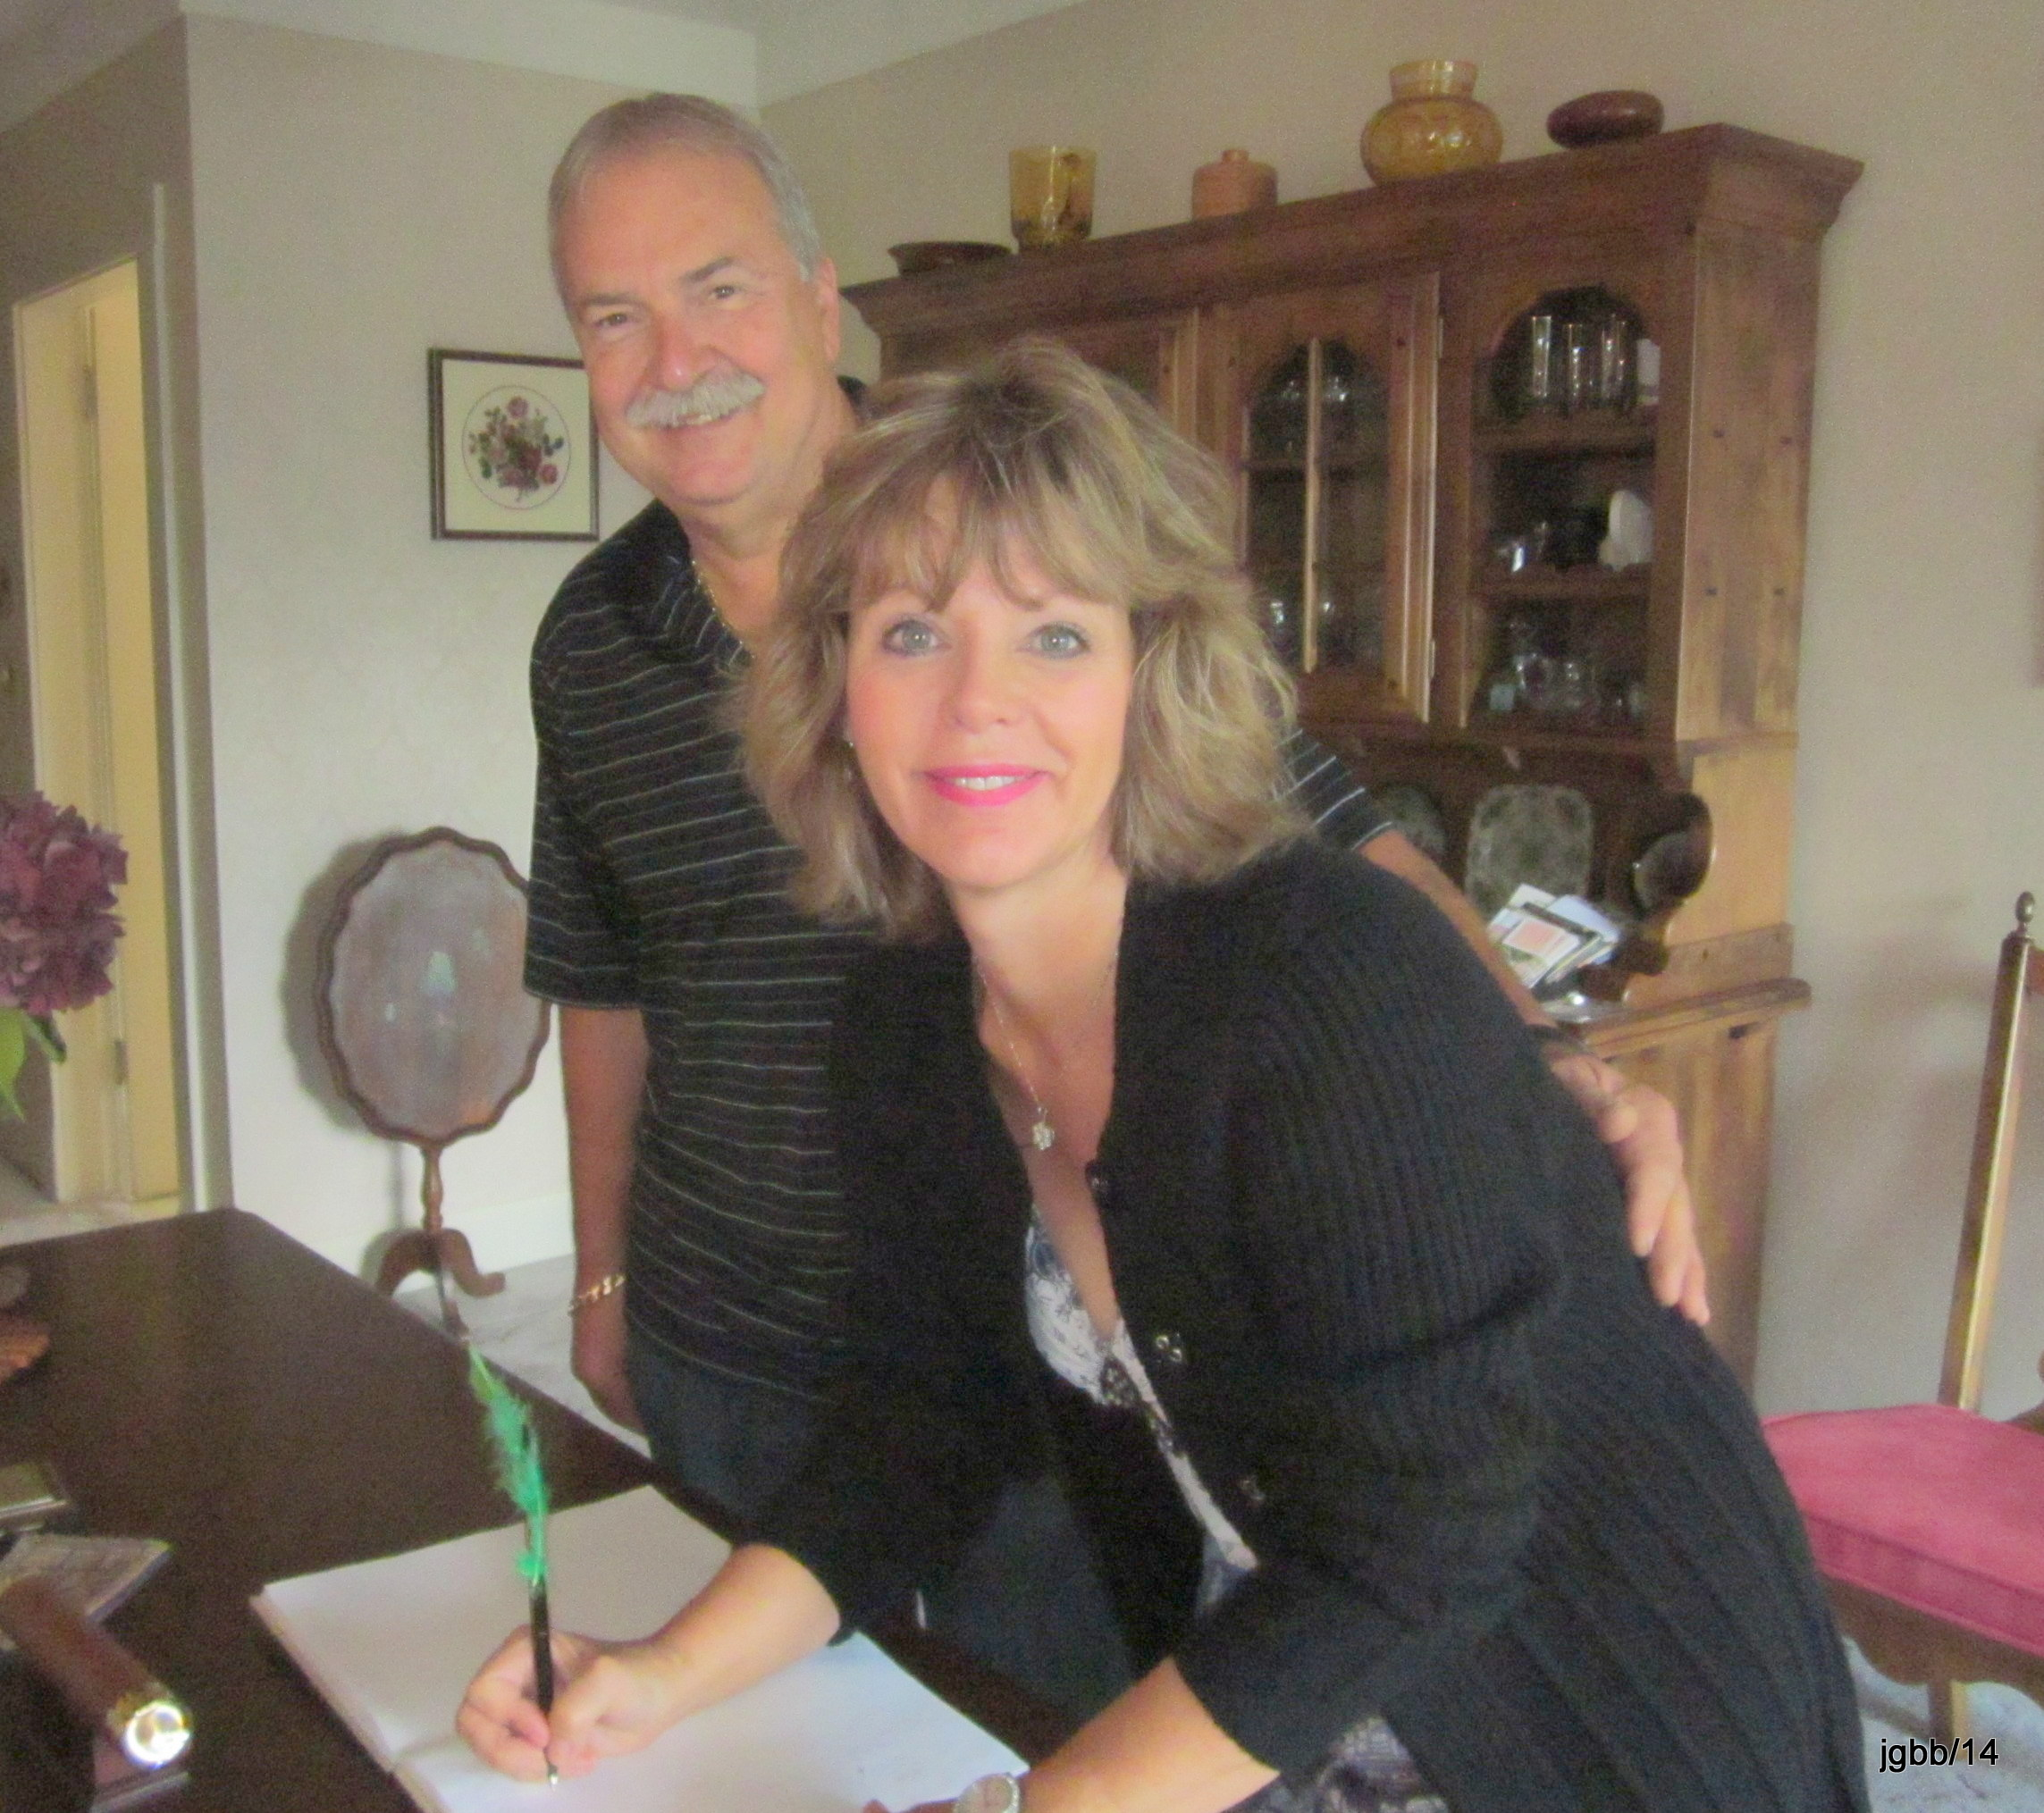 B&B Guests- writing in book